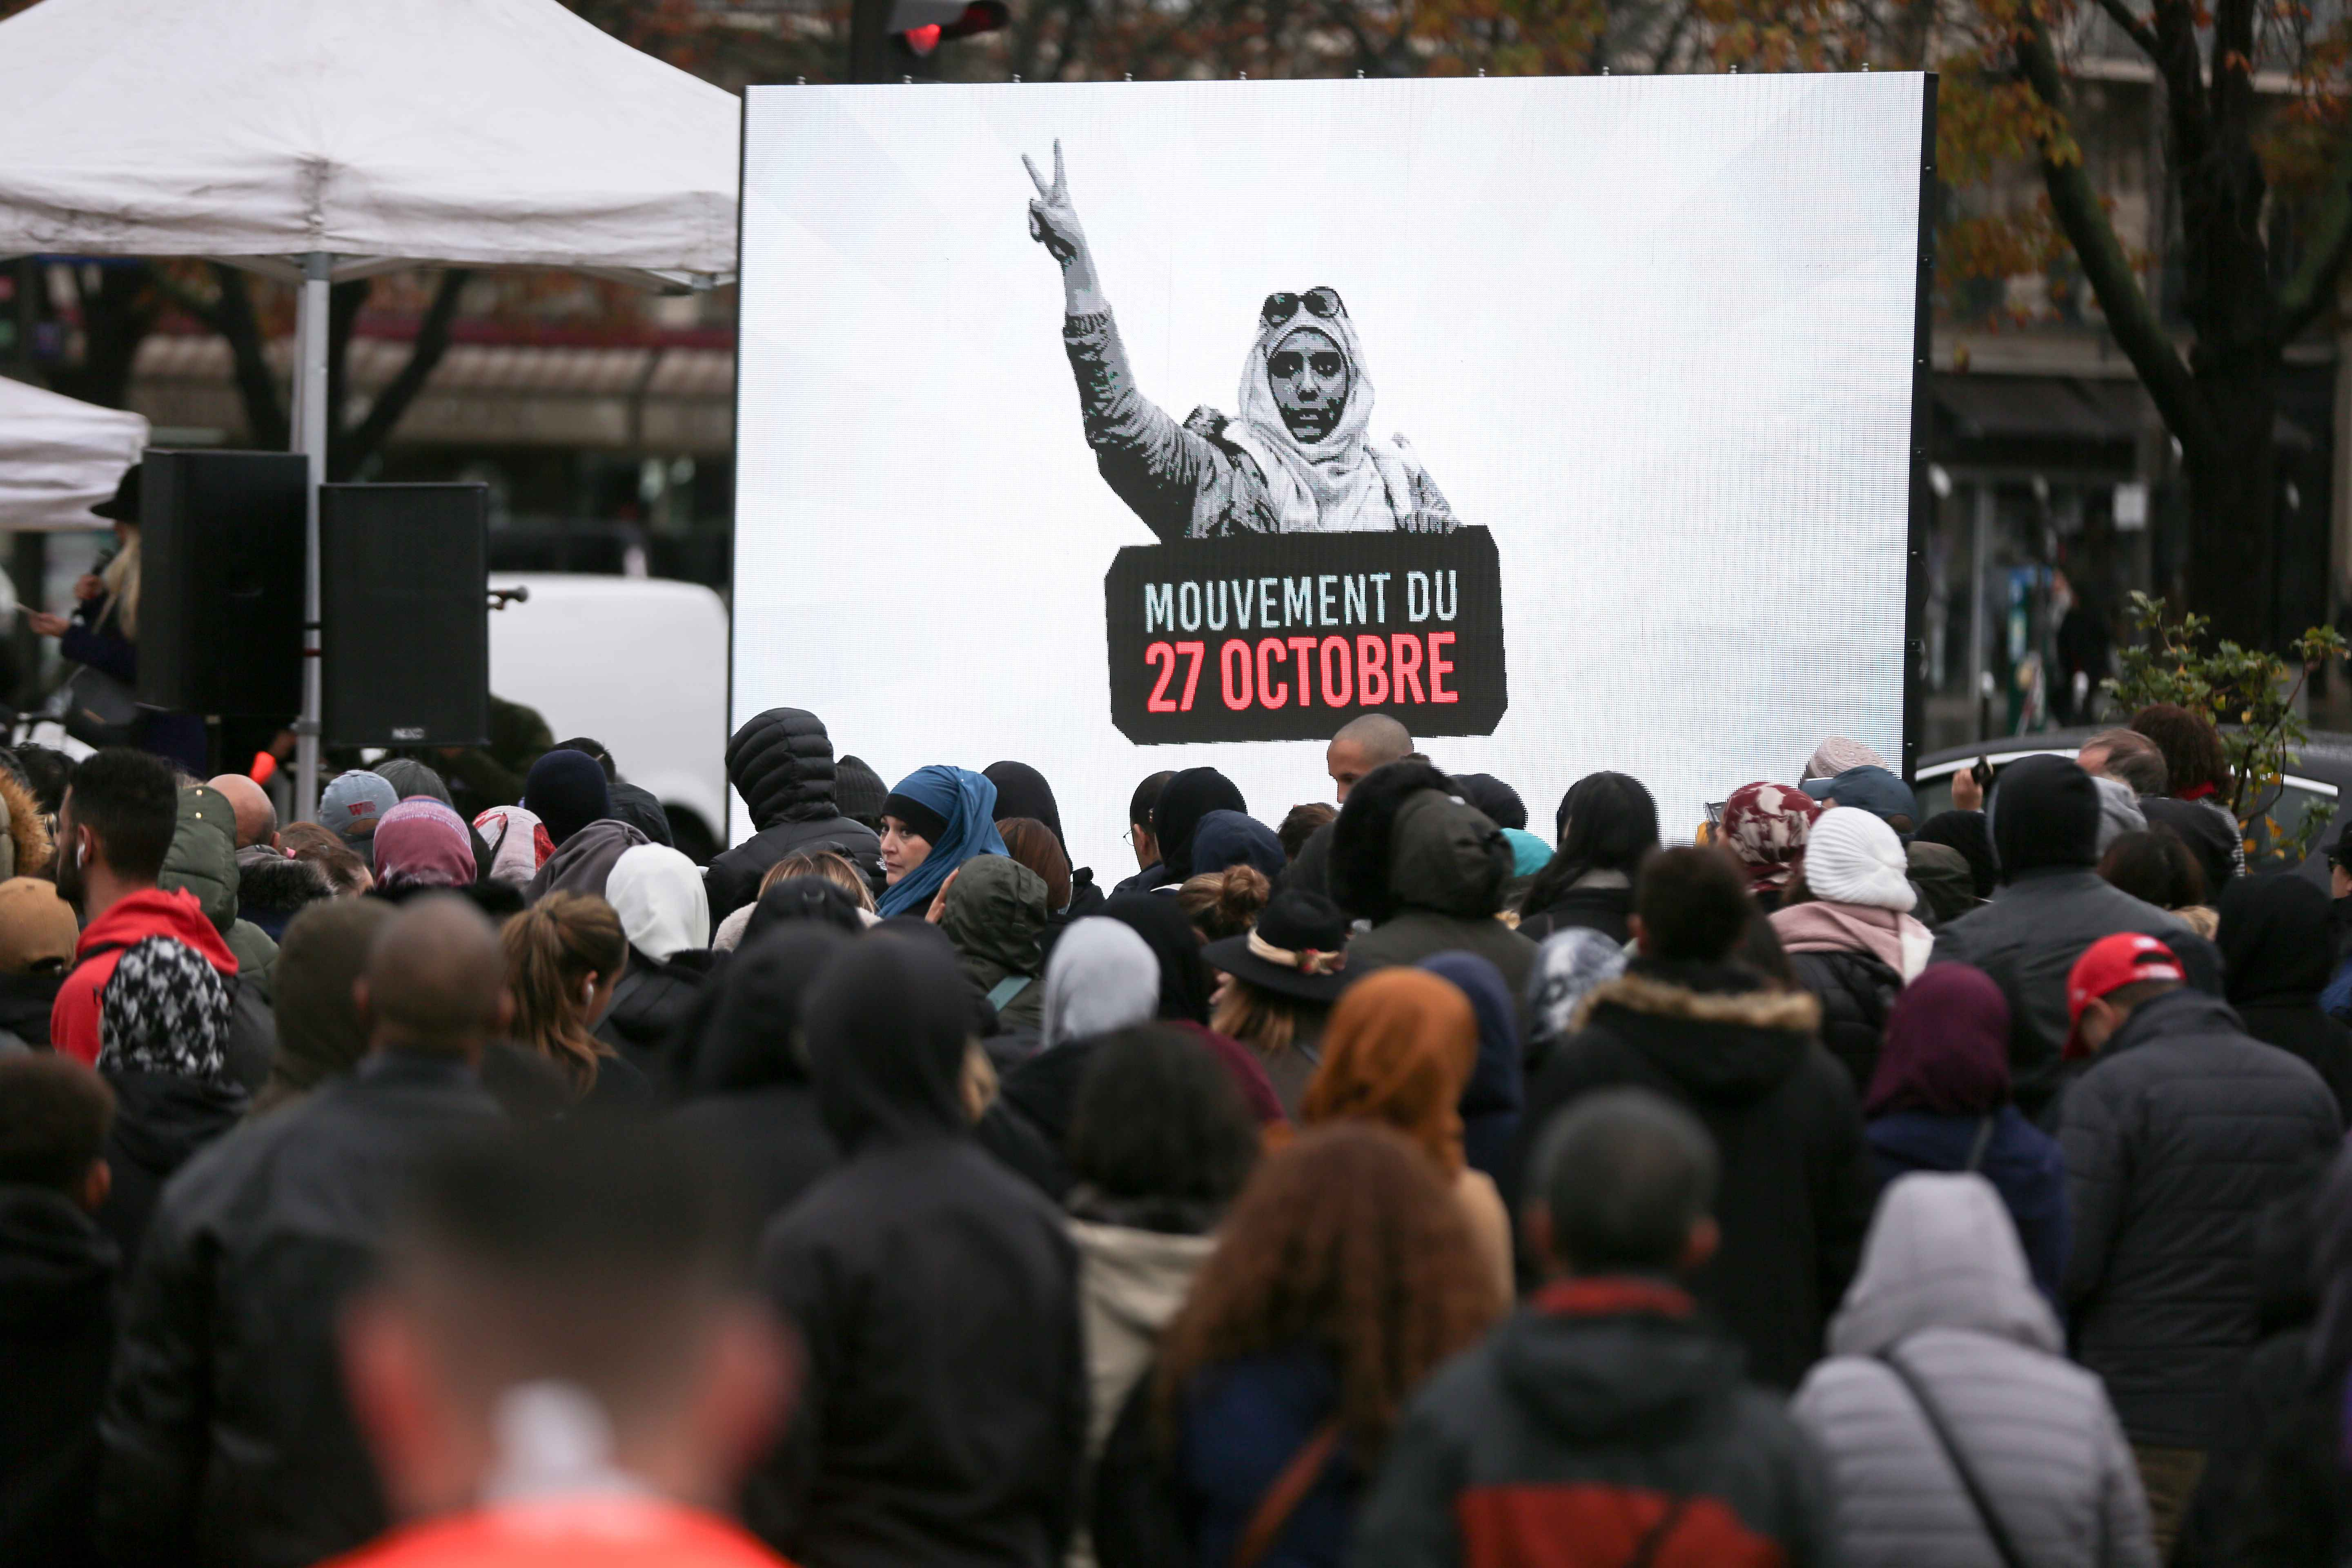 People gather place de la Nation, one of the Paris' major crossroad on October 27, 2019, to protest against Islamophobia and media bias in France. A new row over secularism and the wearing of the Islamic hijab in public buildings has erupted in France af